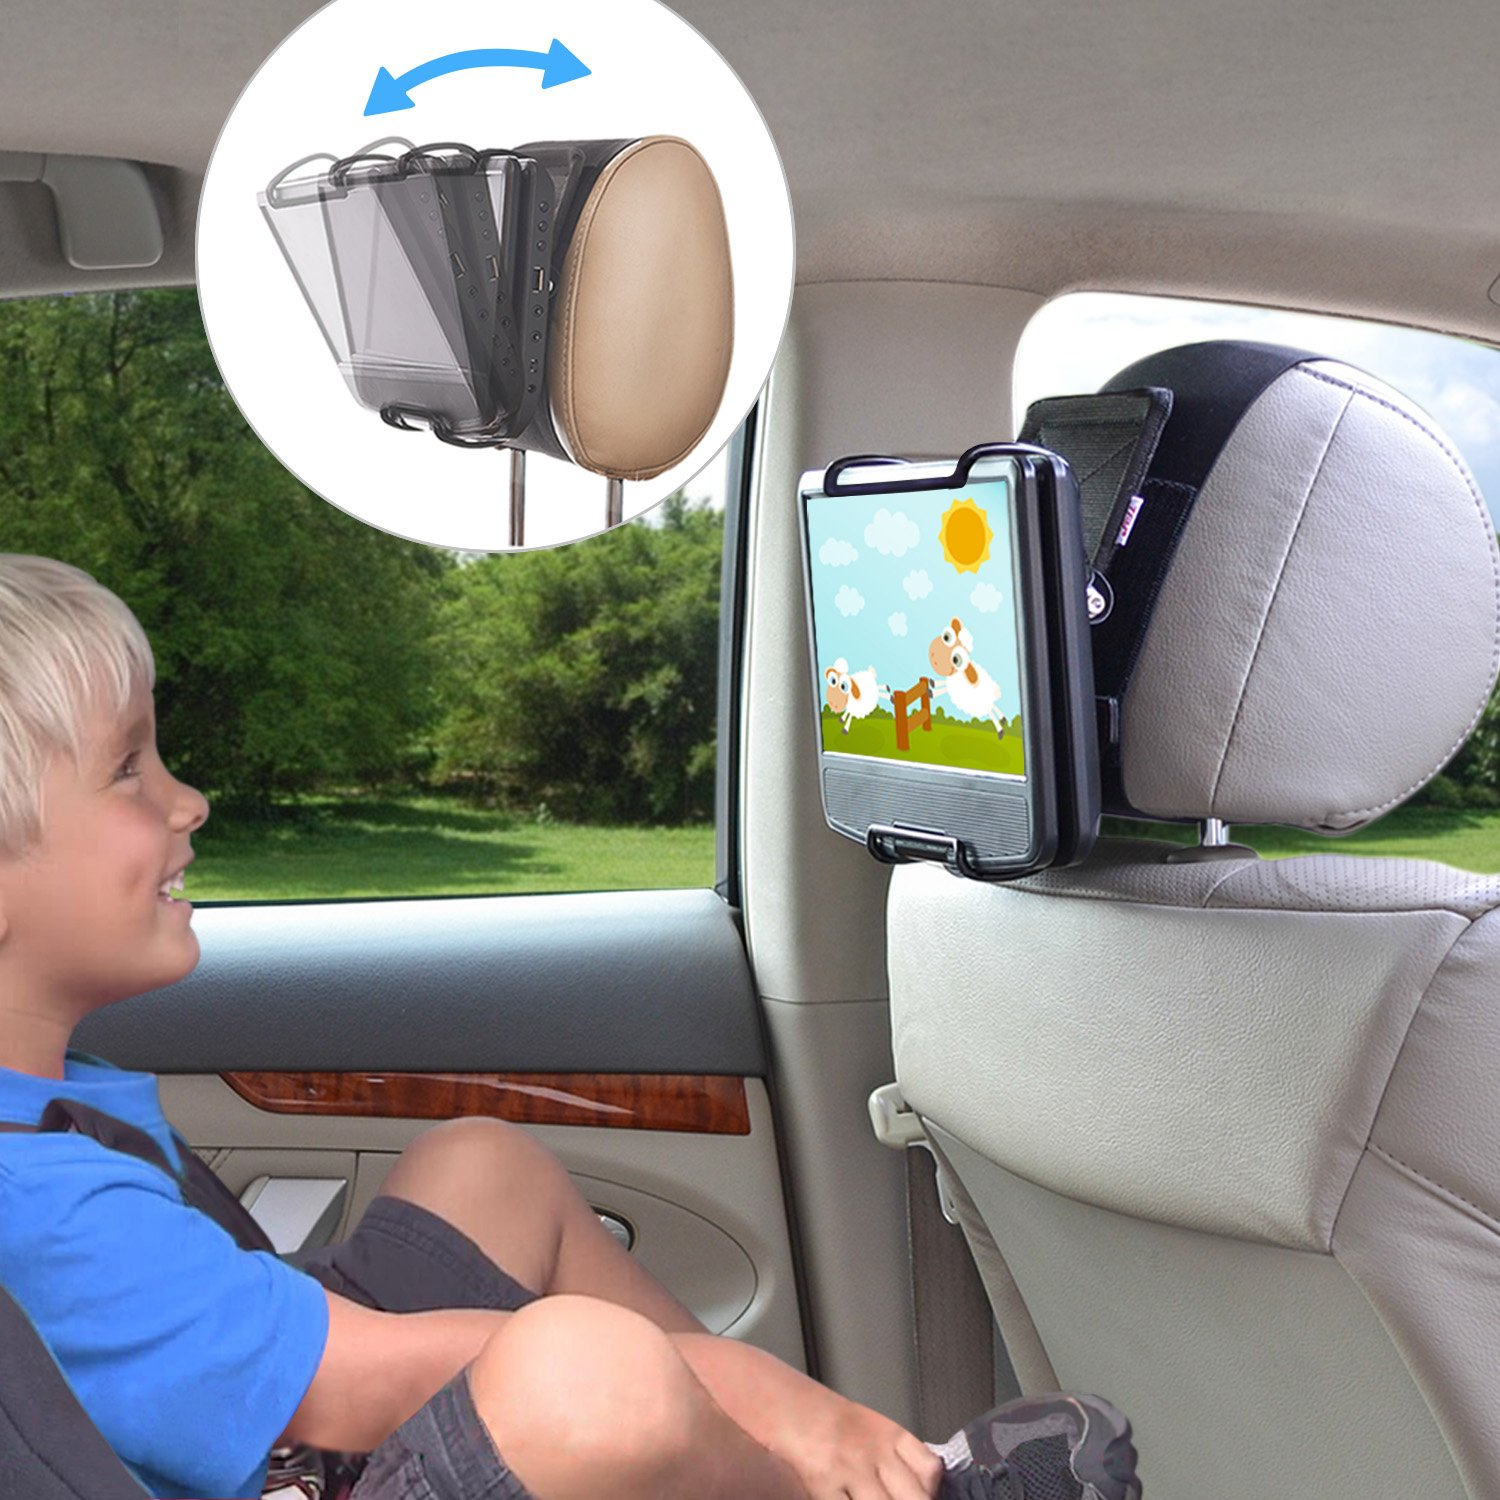 TFY Universal Car Headrest Mount Holder with Angle- Adjustable Holding Clamp for Swivel Screen Portable DVD Players, Black by TFY